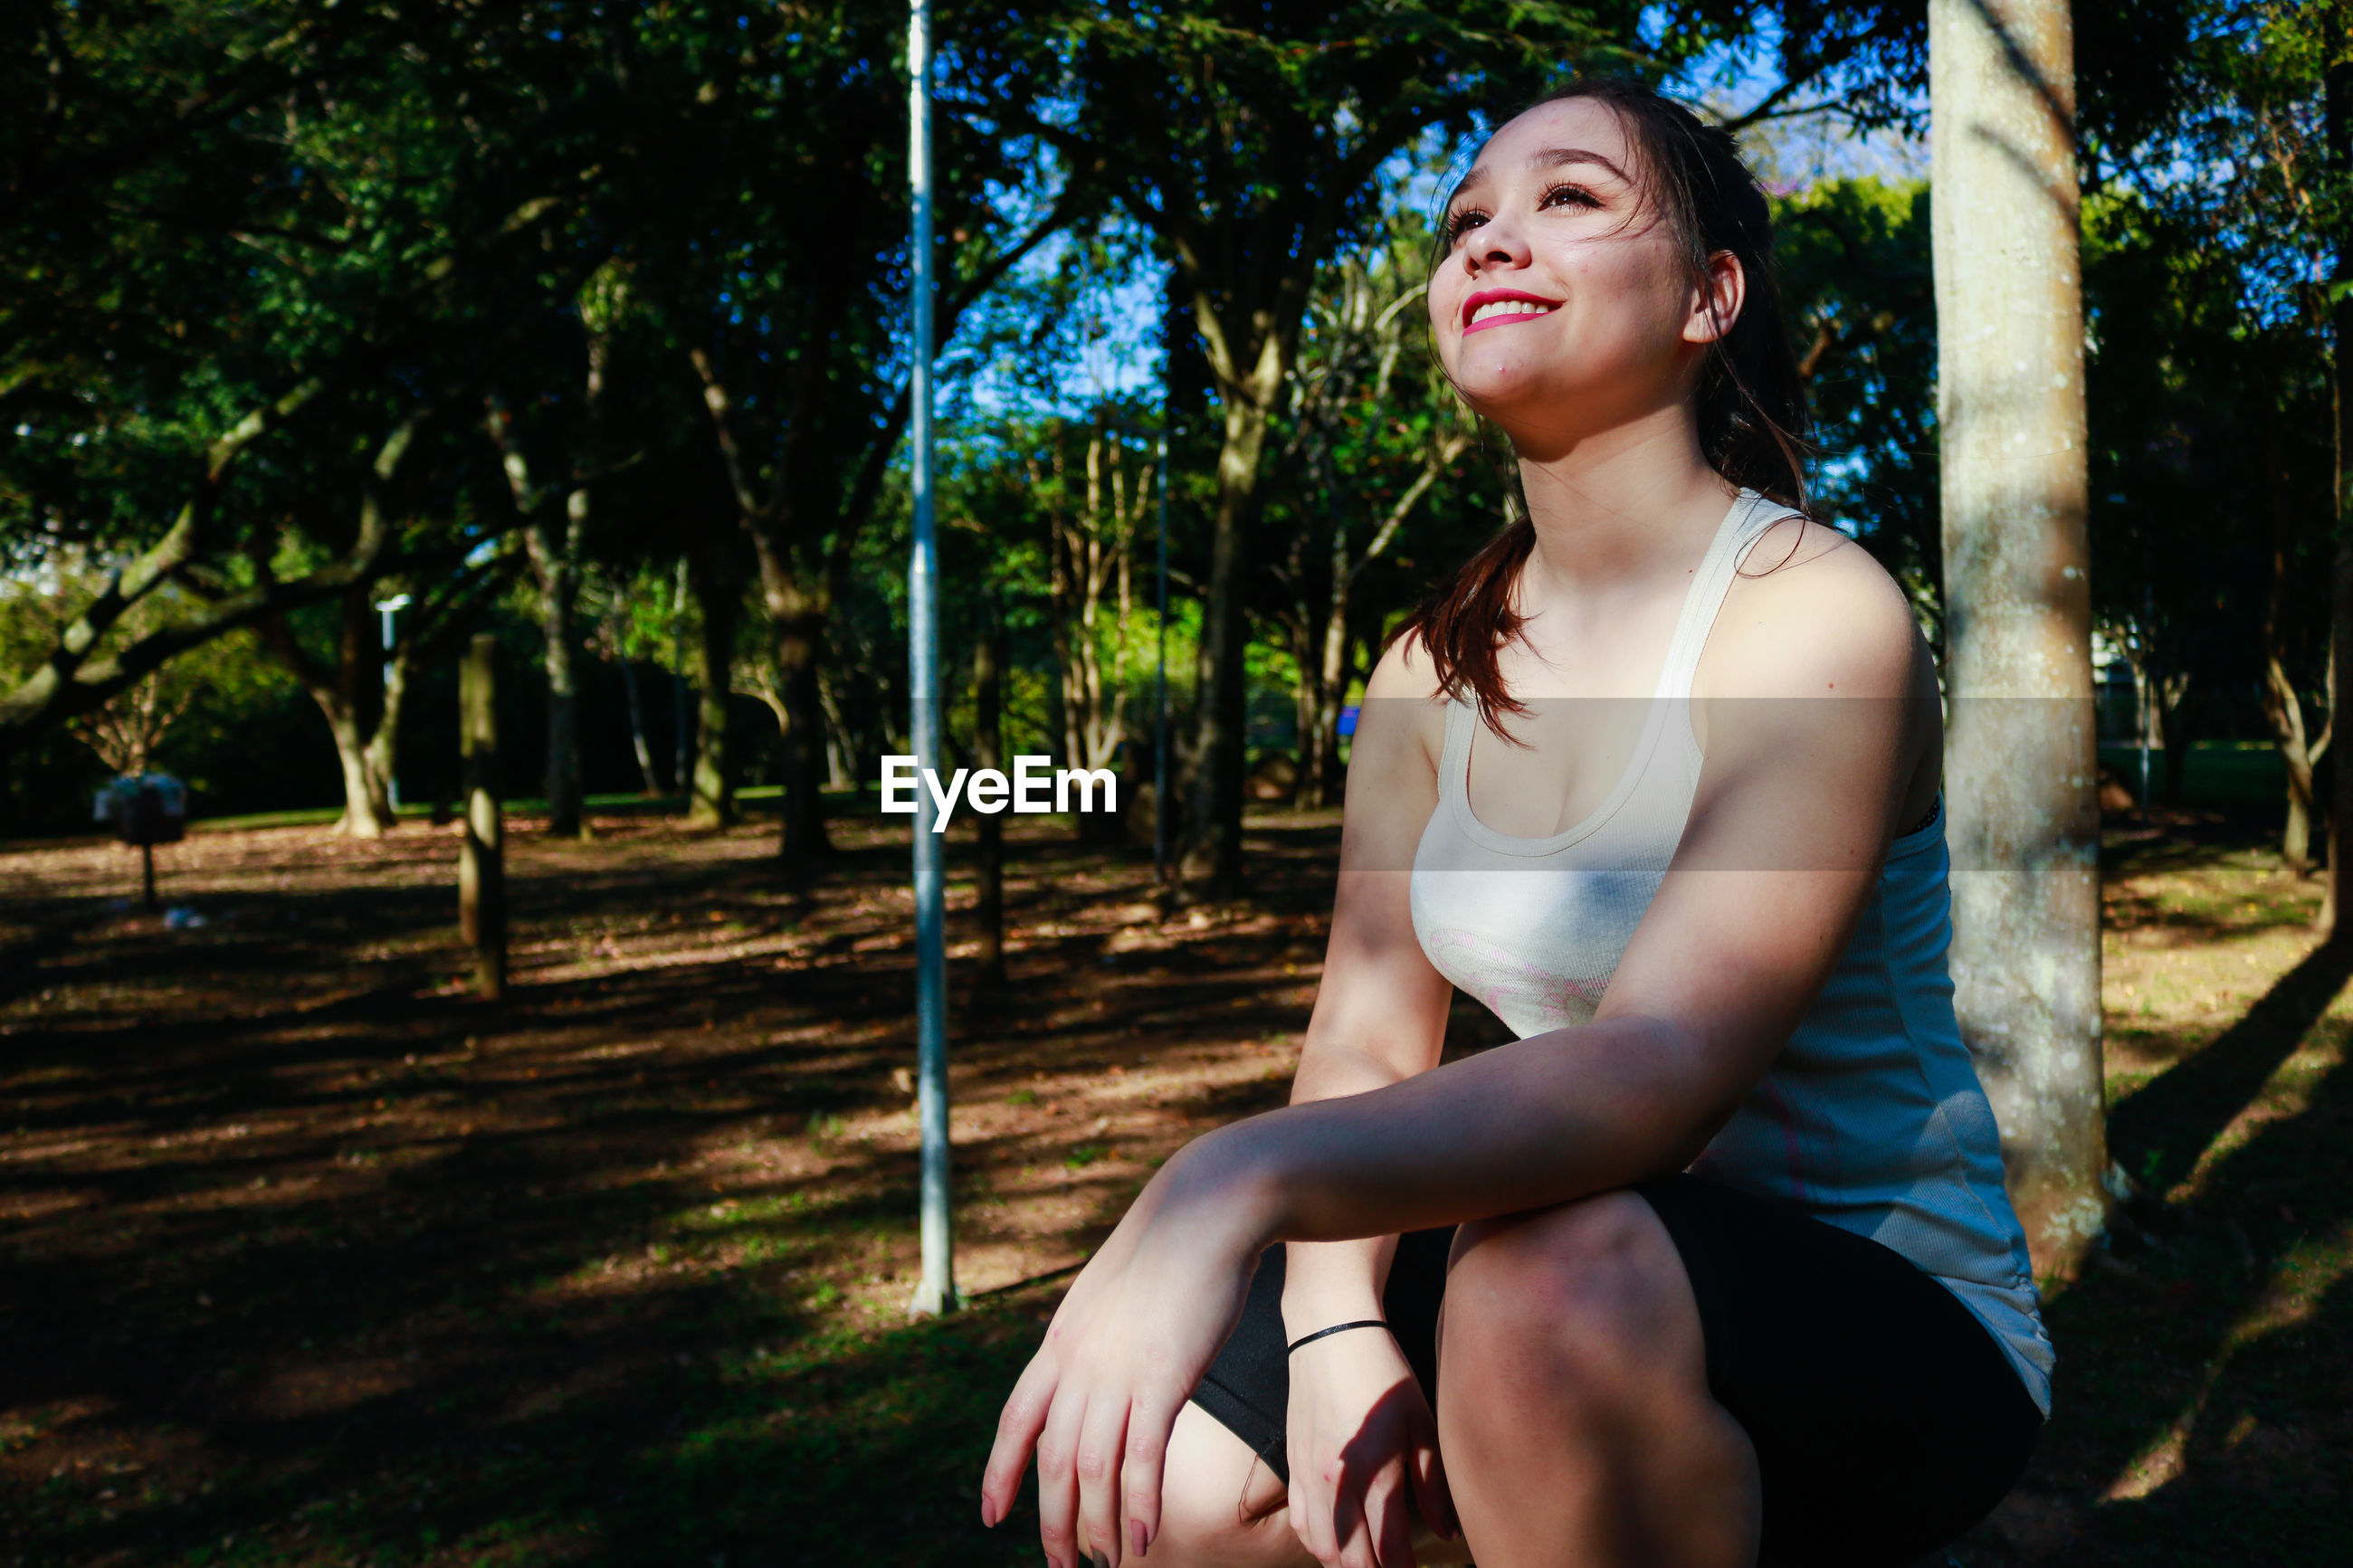 Beautiful woman smiling while crouching against tree at park